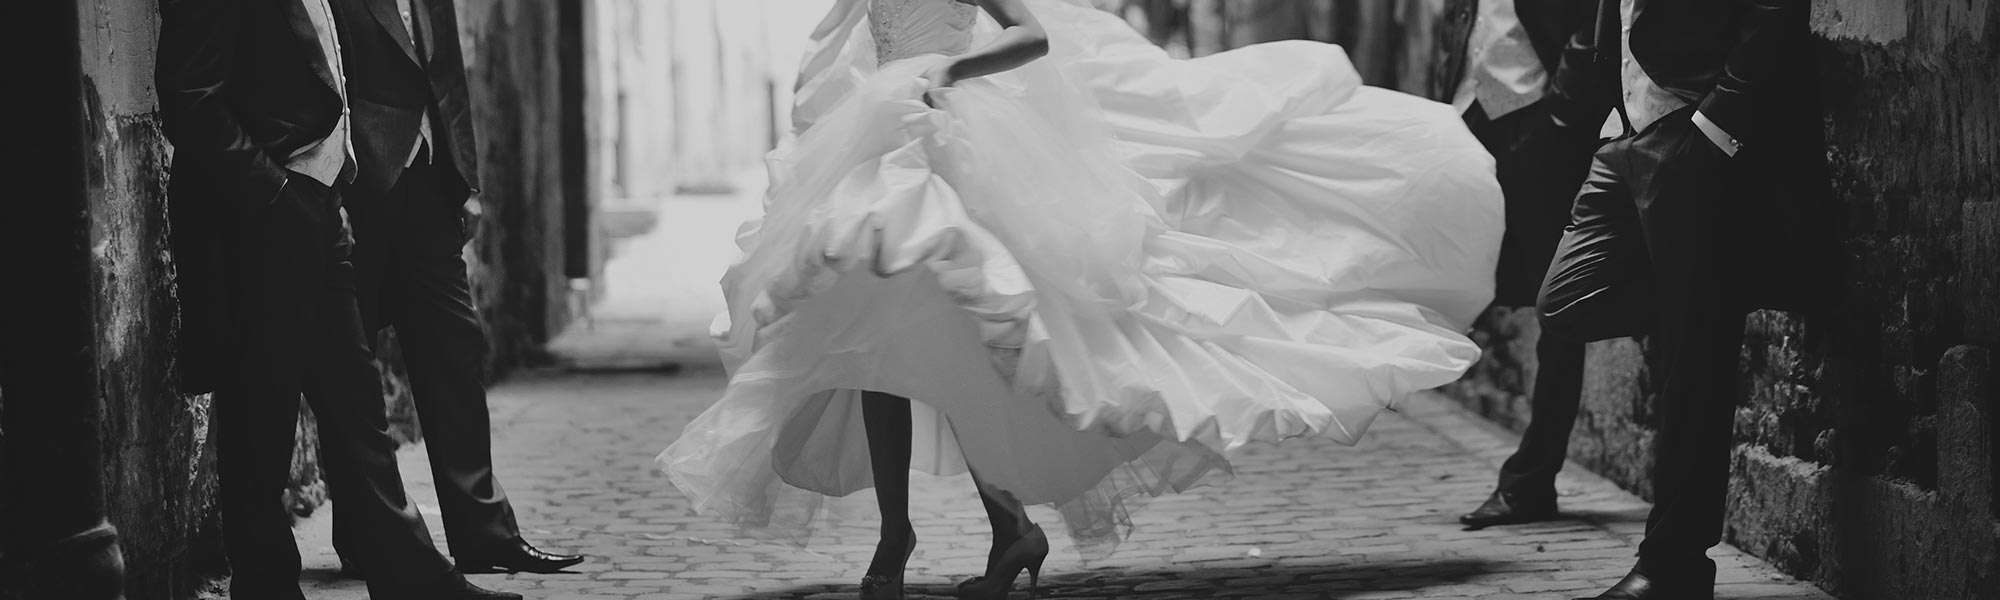 Trends in Bridal Fashion